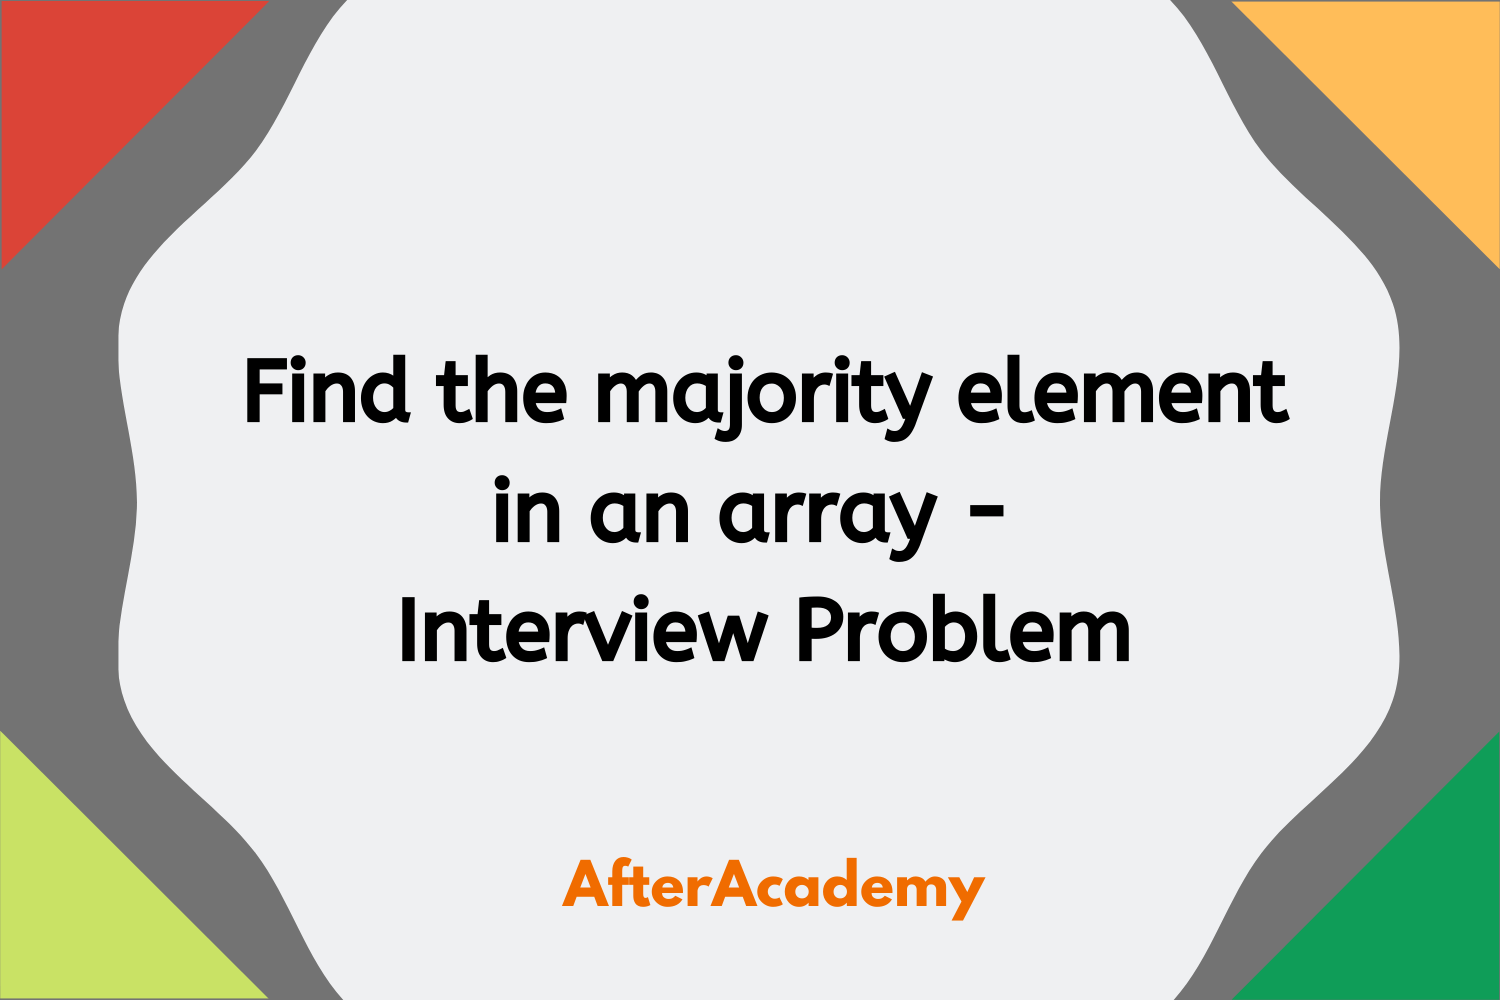 Find the majority element in an array - Interview Problem